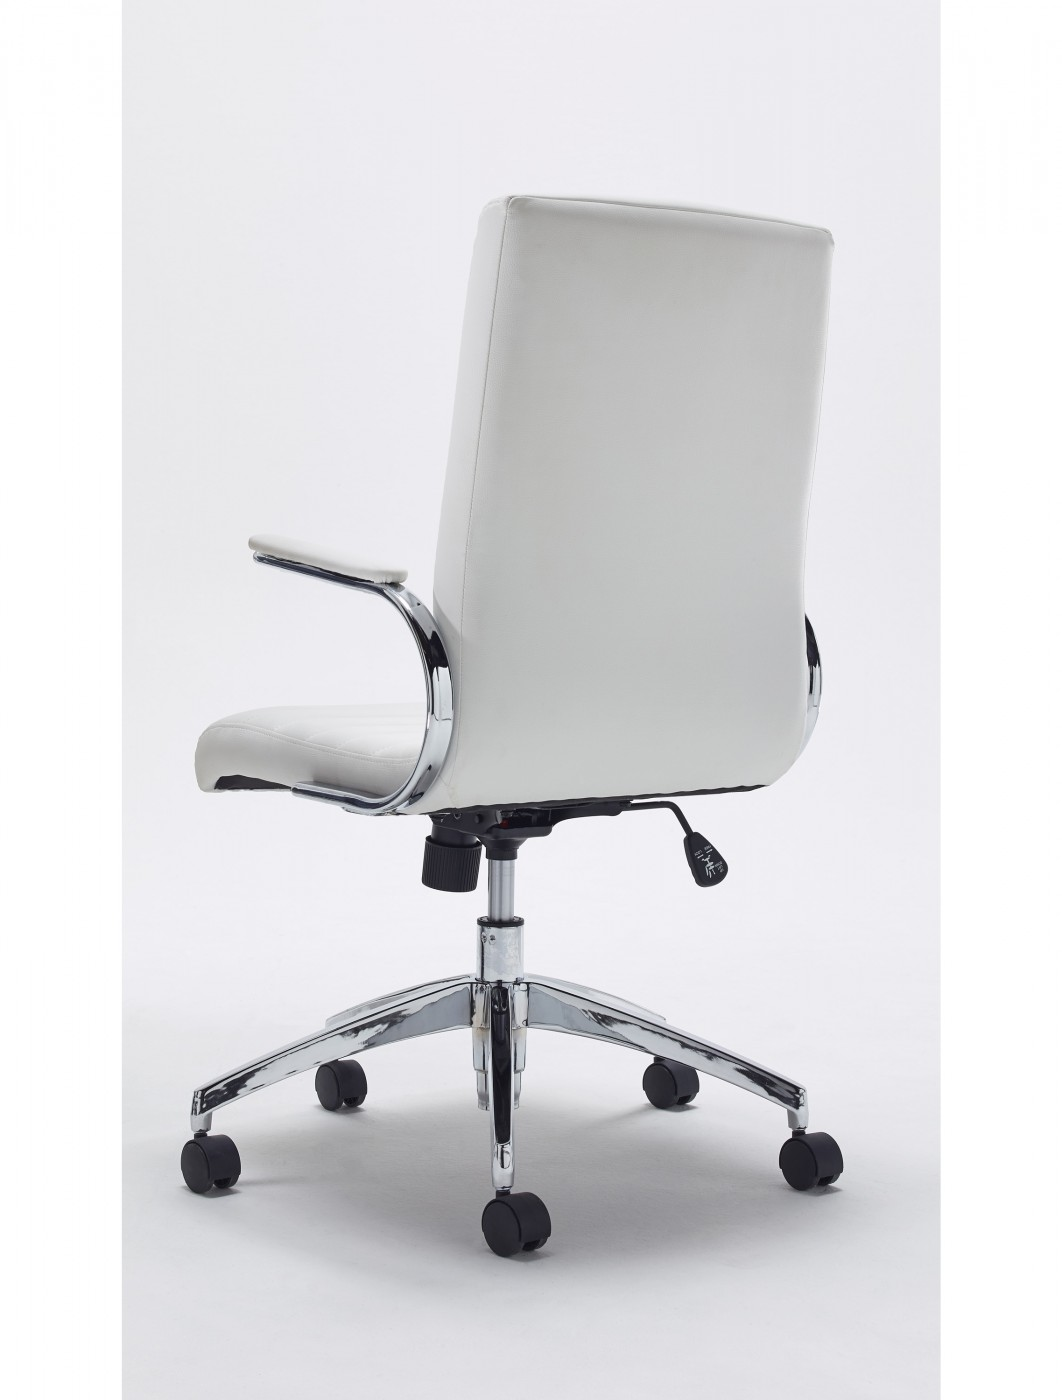 ideas your choose modern style desk office executive minimalist for an how to design white